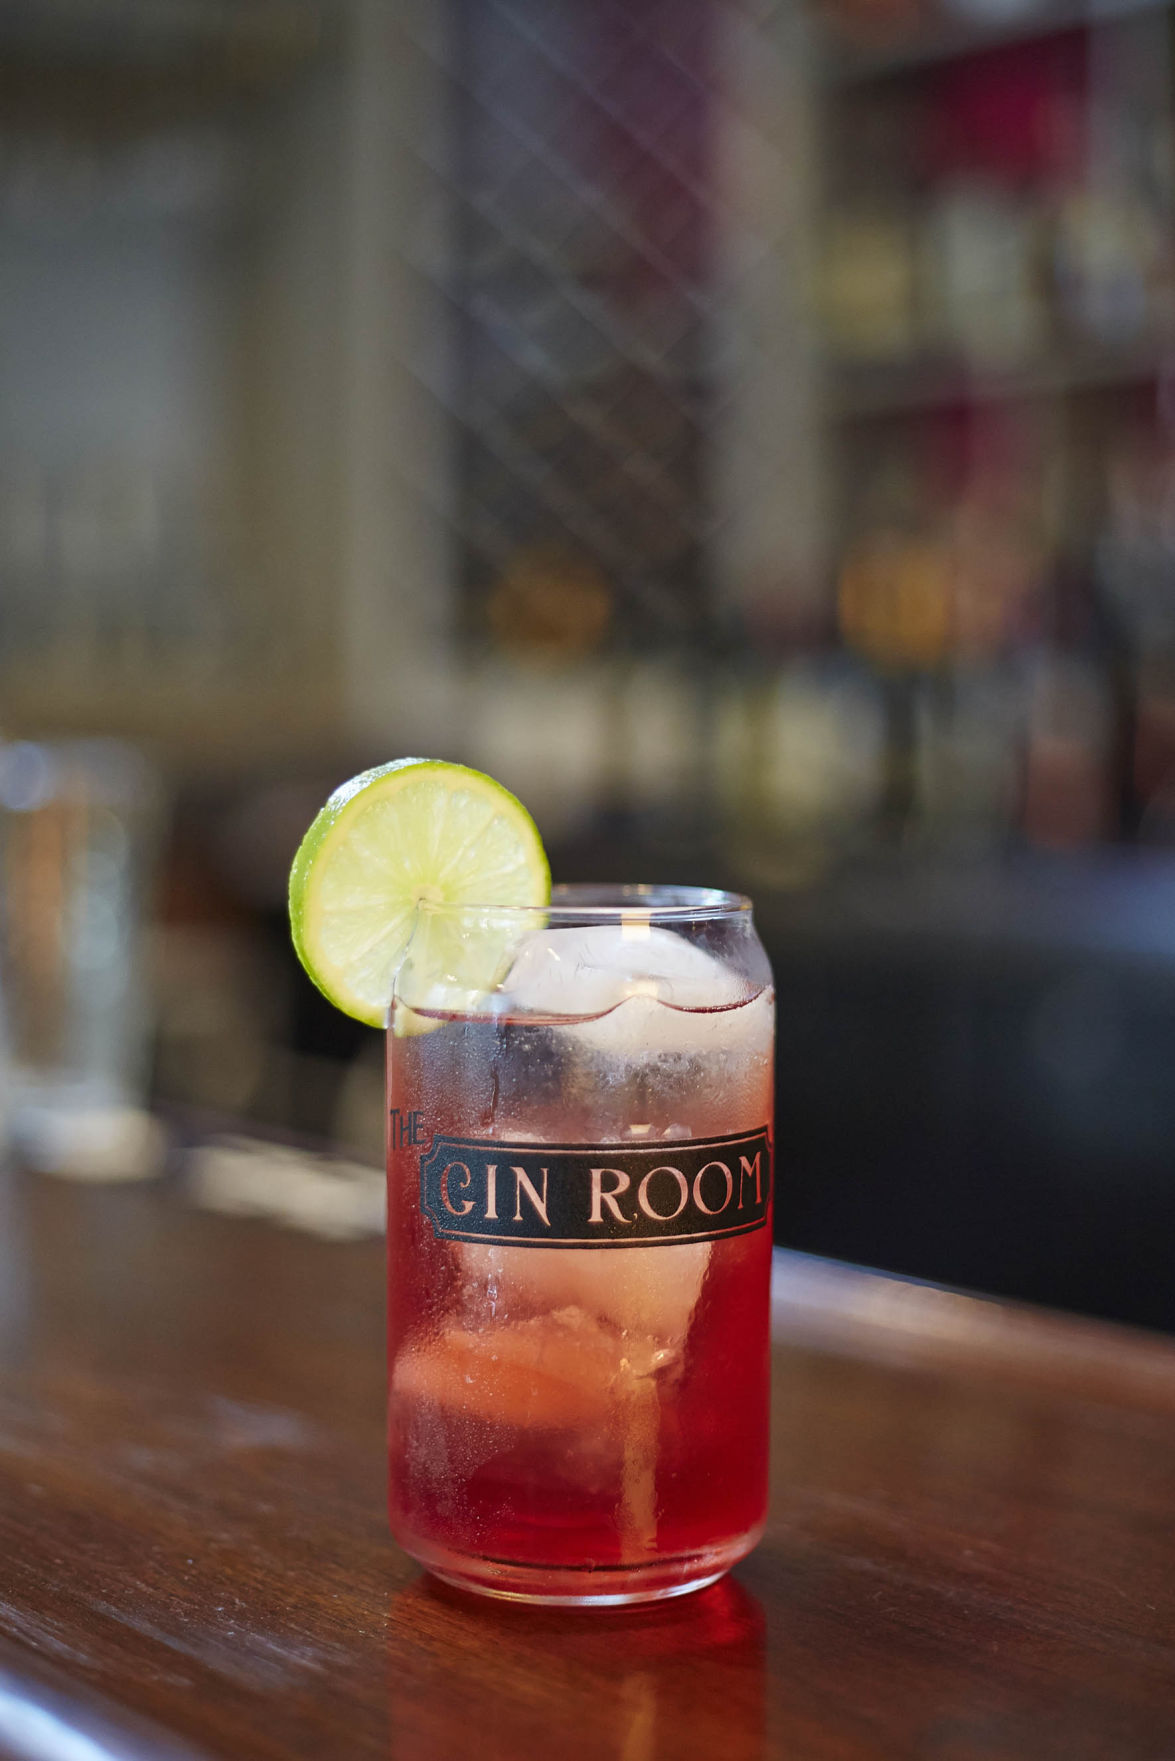 The Gin Room North Rose Gin and Tonic